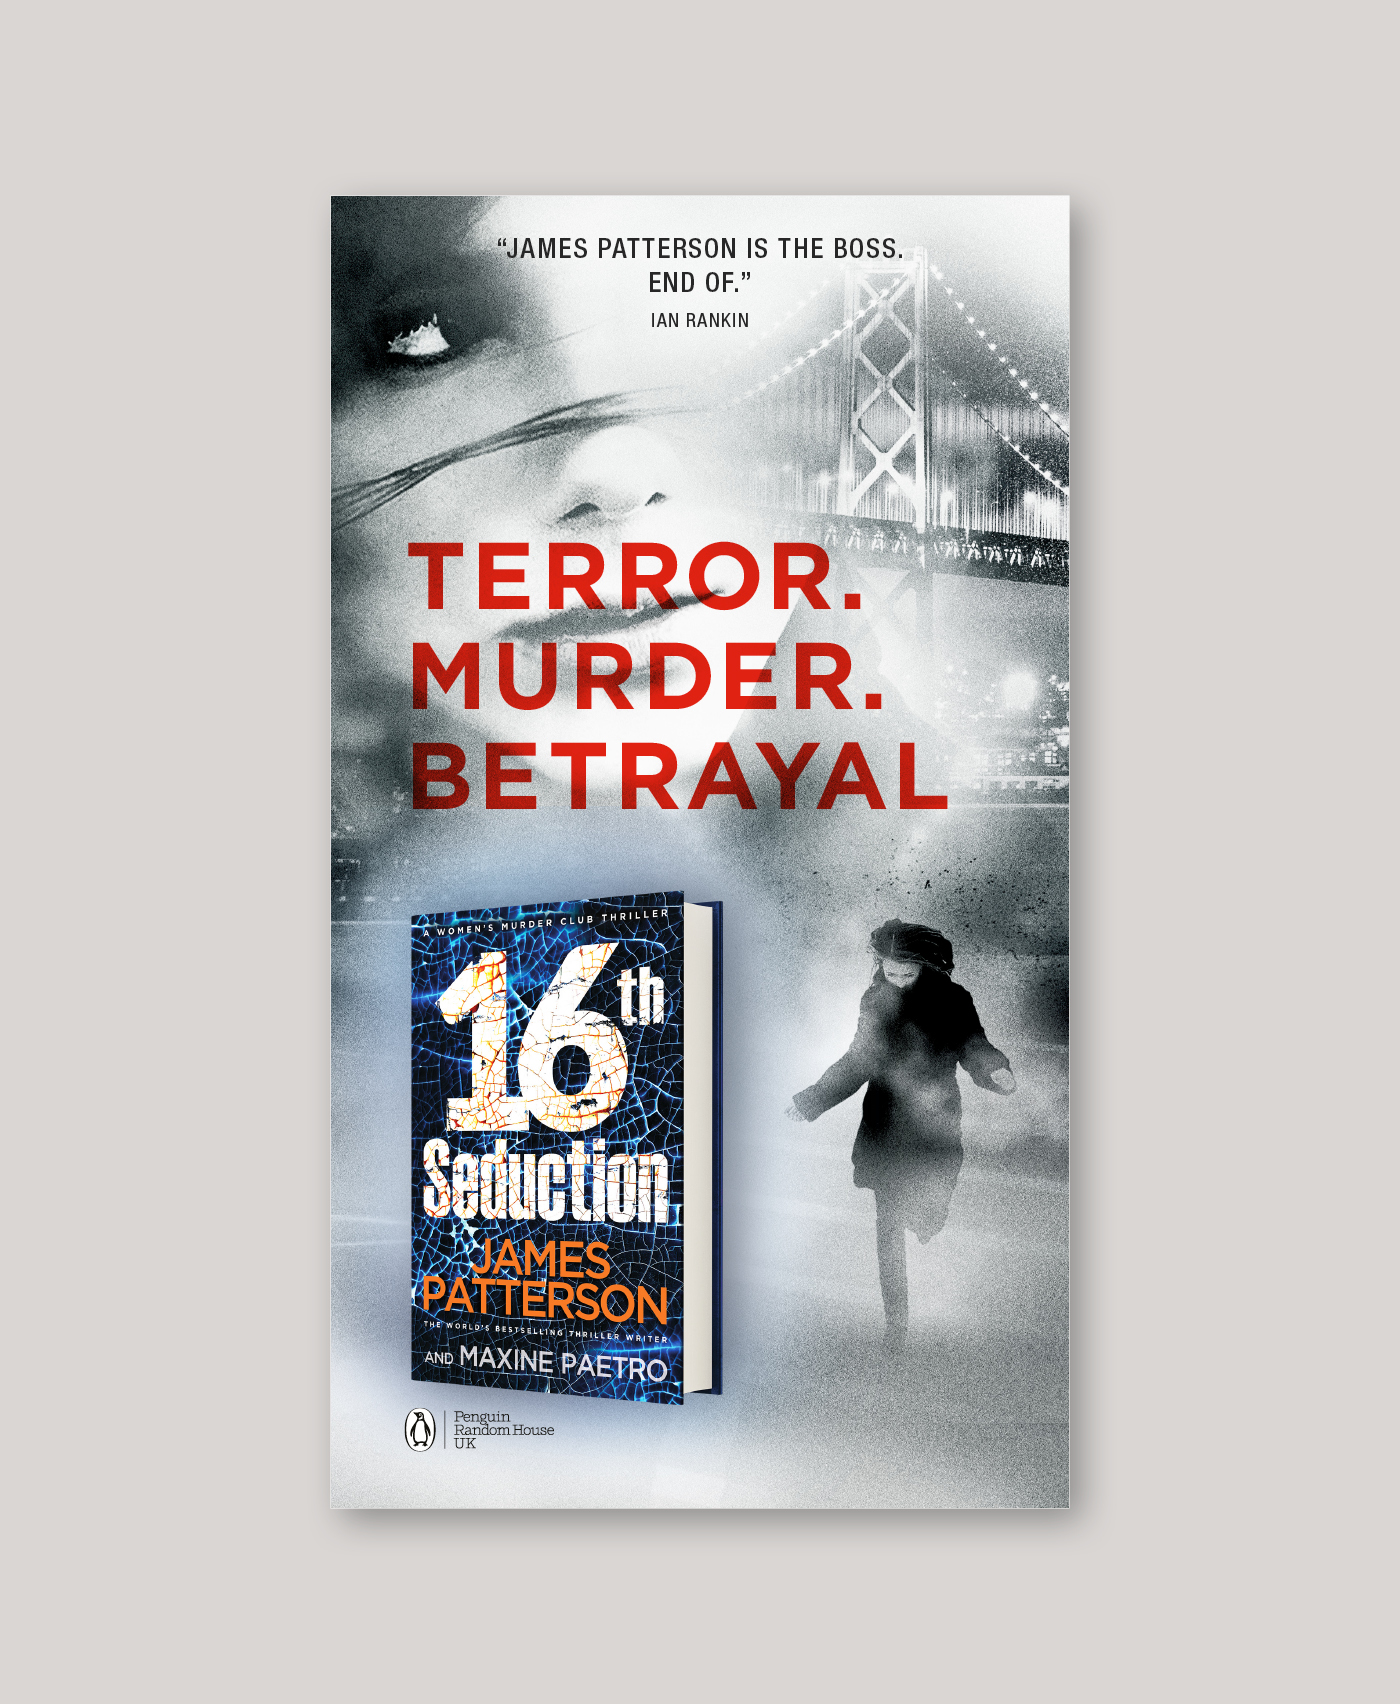 James Patterson Outdoor Advertising Ooh 16Th Seduction Penguin Random House Underground Tube Advertising 01